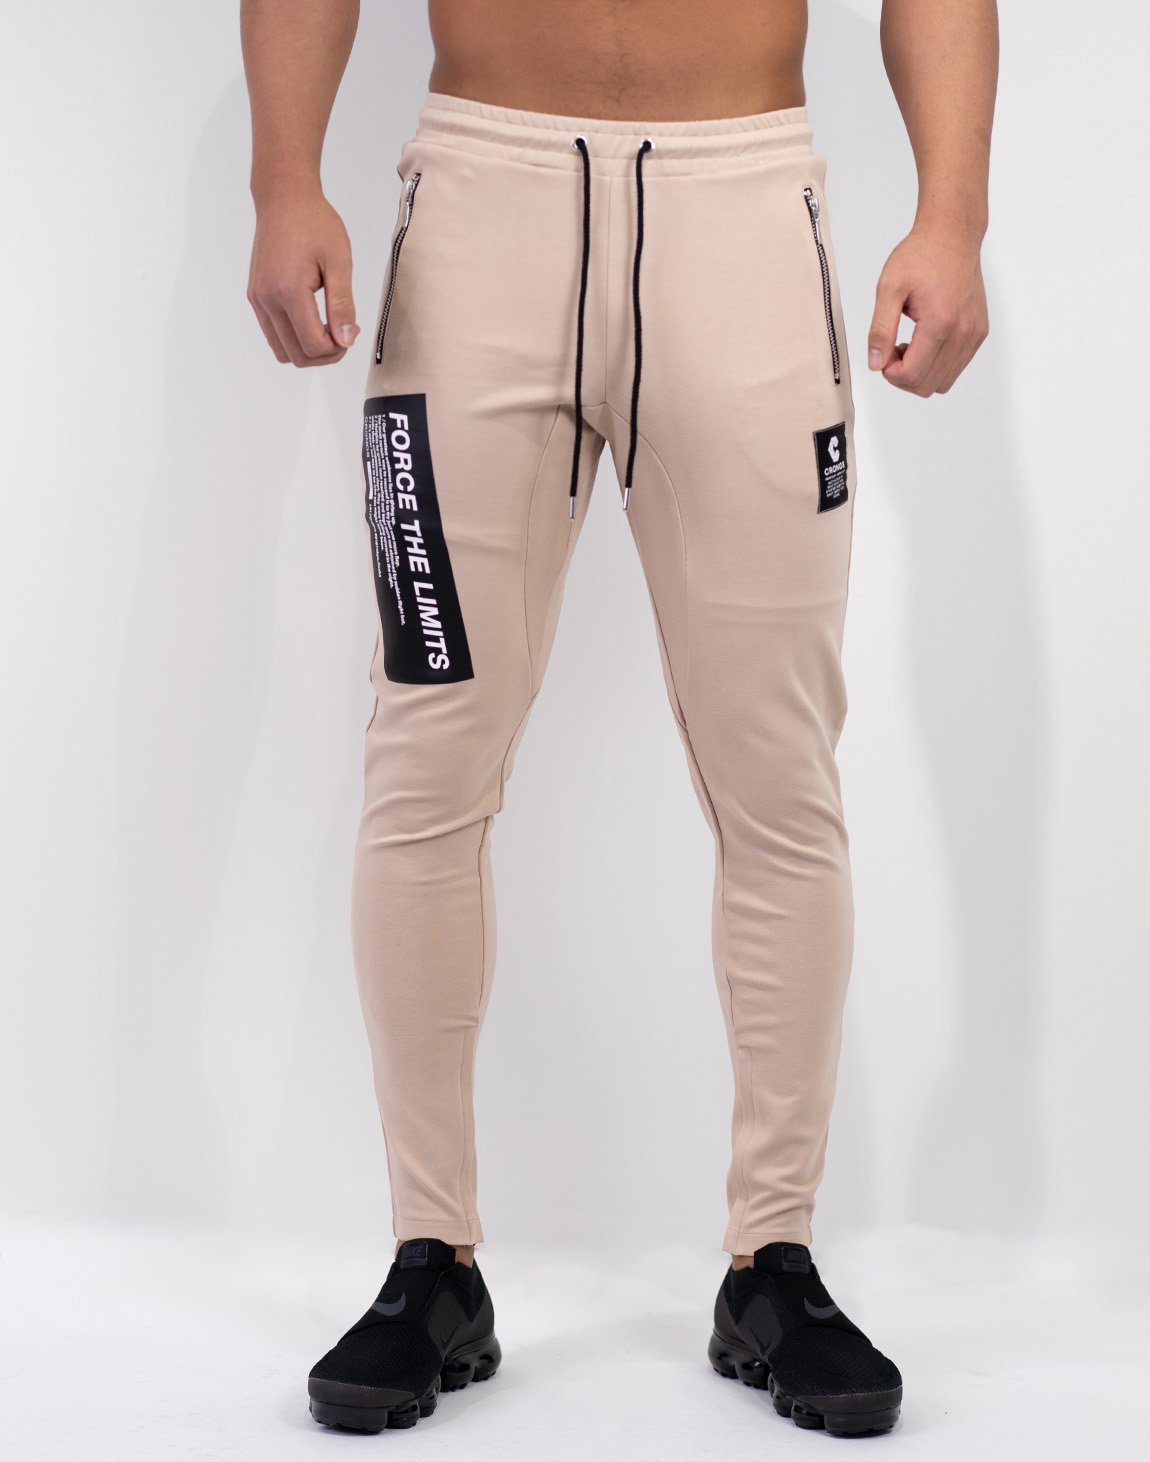 <img class='new_mark_img1' src='https://img.shop-pro.jp/img/new/icons1.gif' style='border:none;display:inline;margin:0px;padding:0px;width:auto;' />SP0012 Modo Pants BEIGE